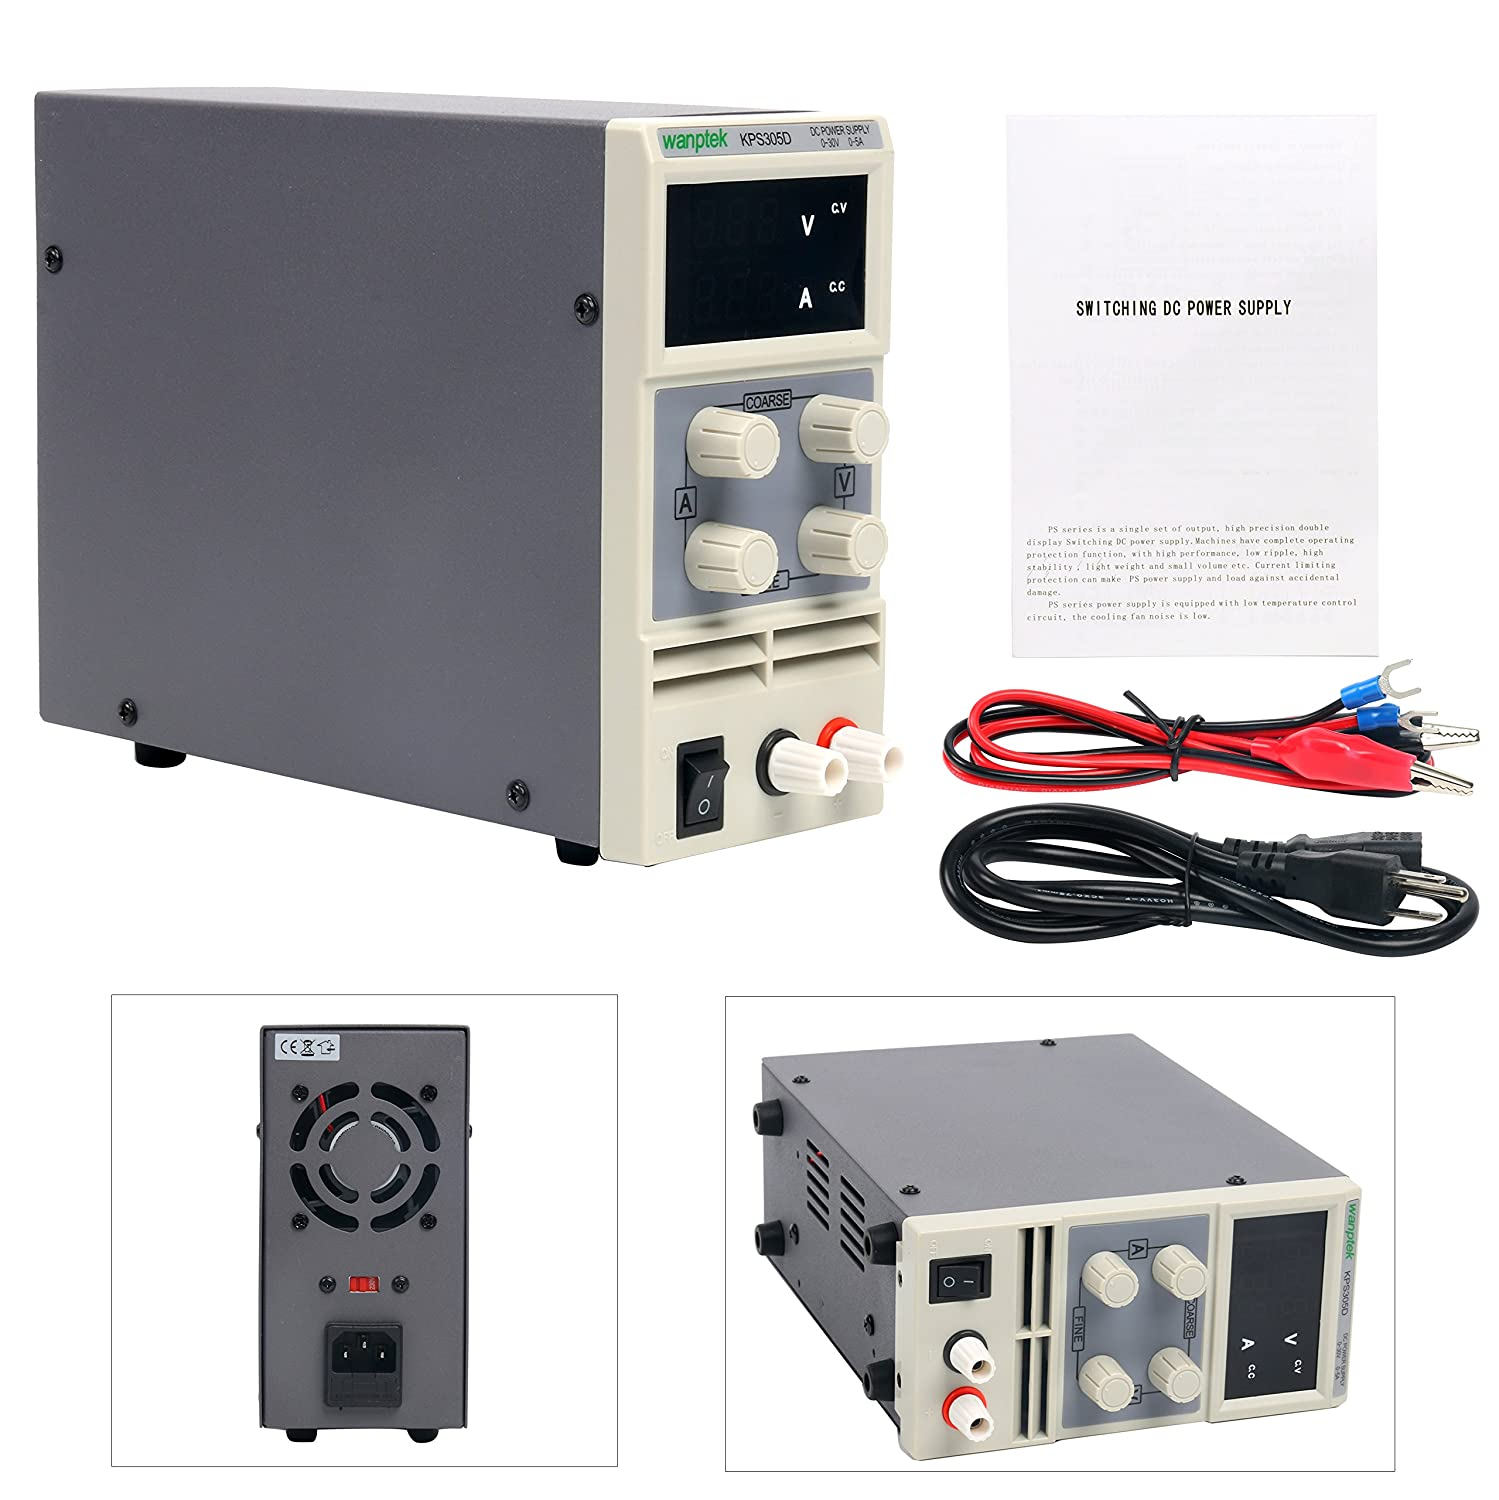 Dc Power Supply Variable Yaeccc Kps305d Adjustable Switching High Current Regulated Digital 0 30 V 5 A With Alligator Leads Us Cord